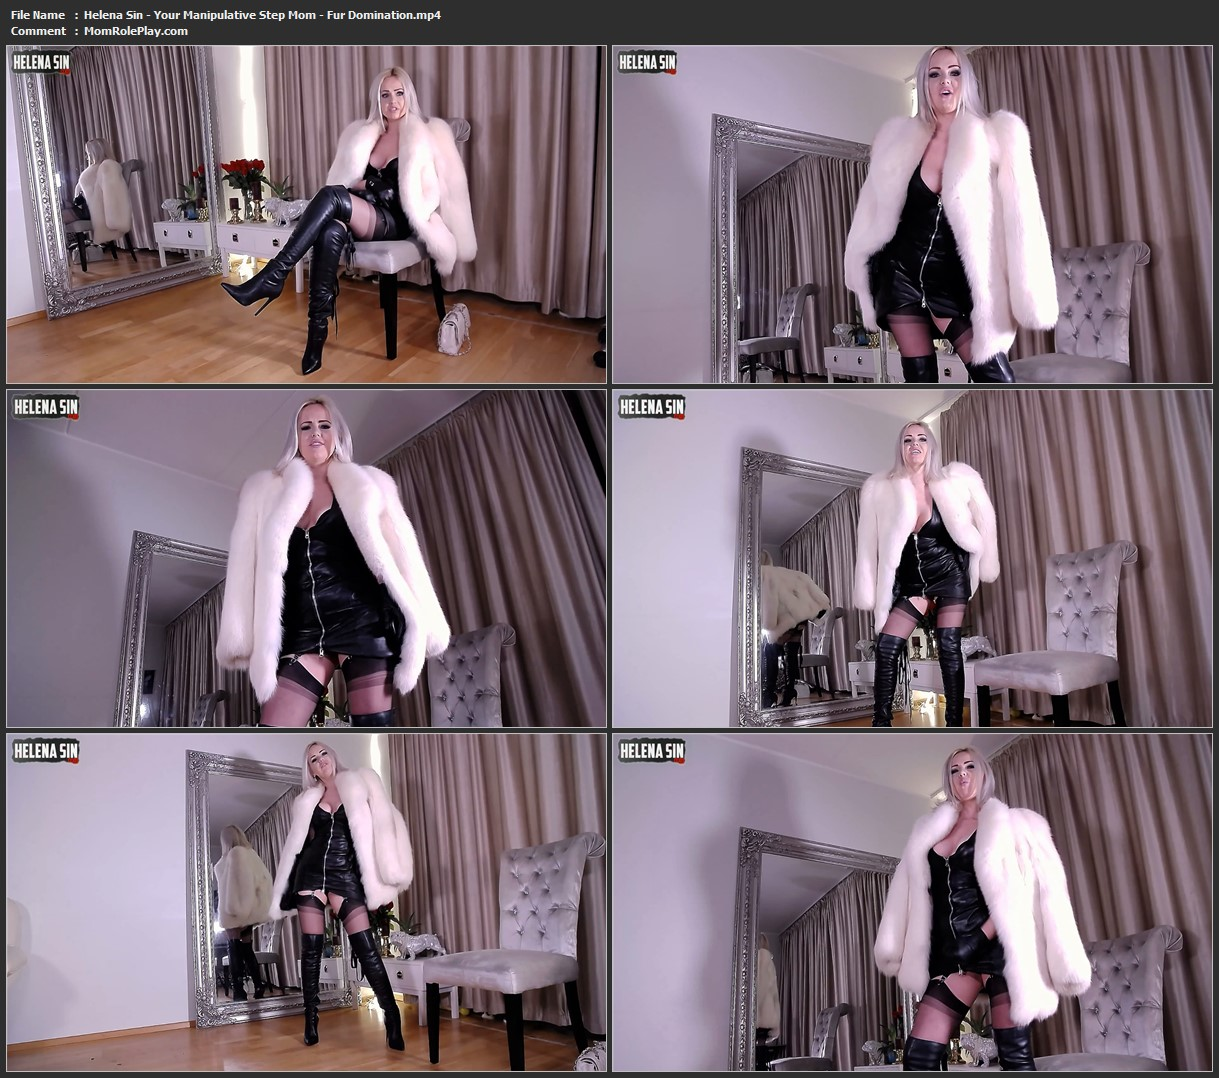 Helena Sin - Your Manipulative Step Mom - Fur Domination